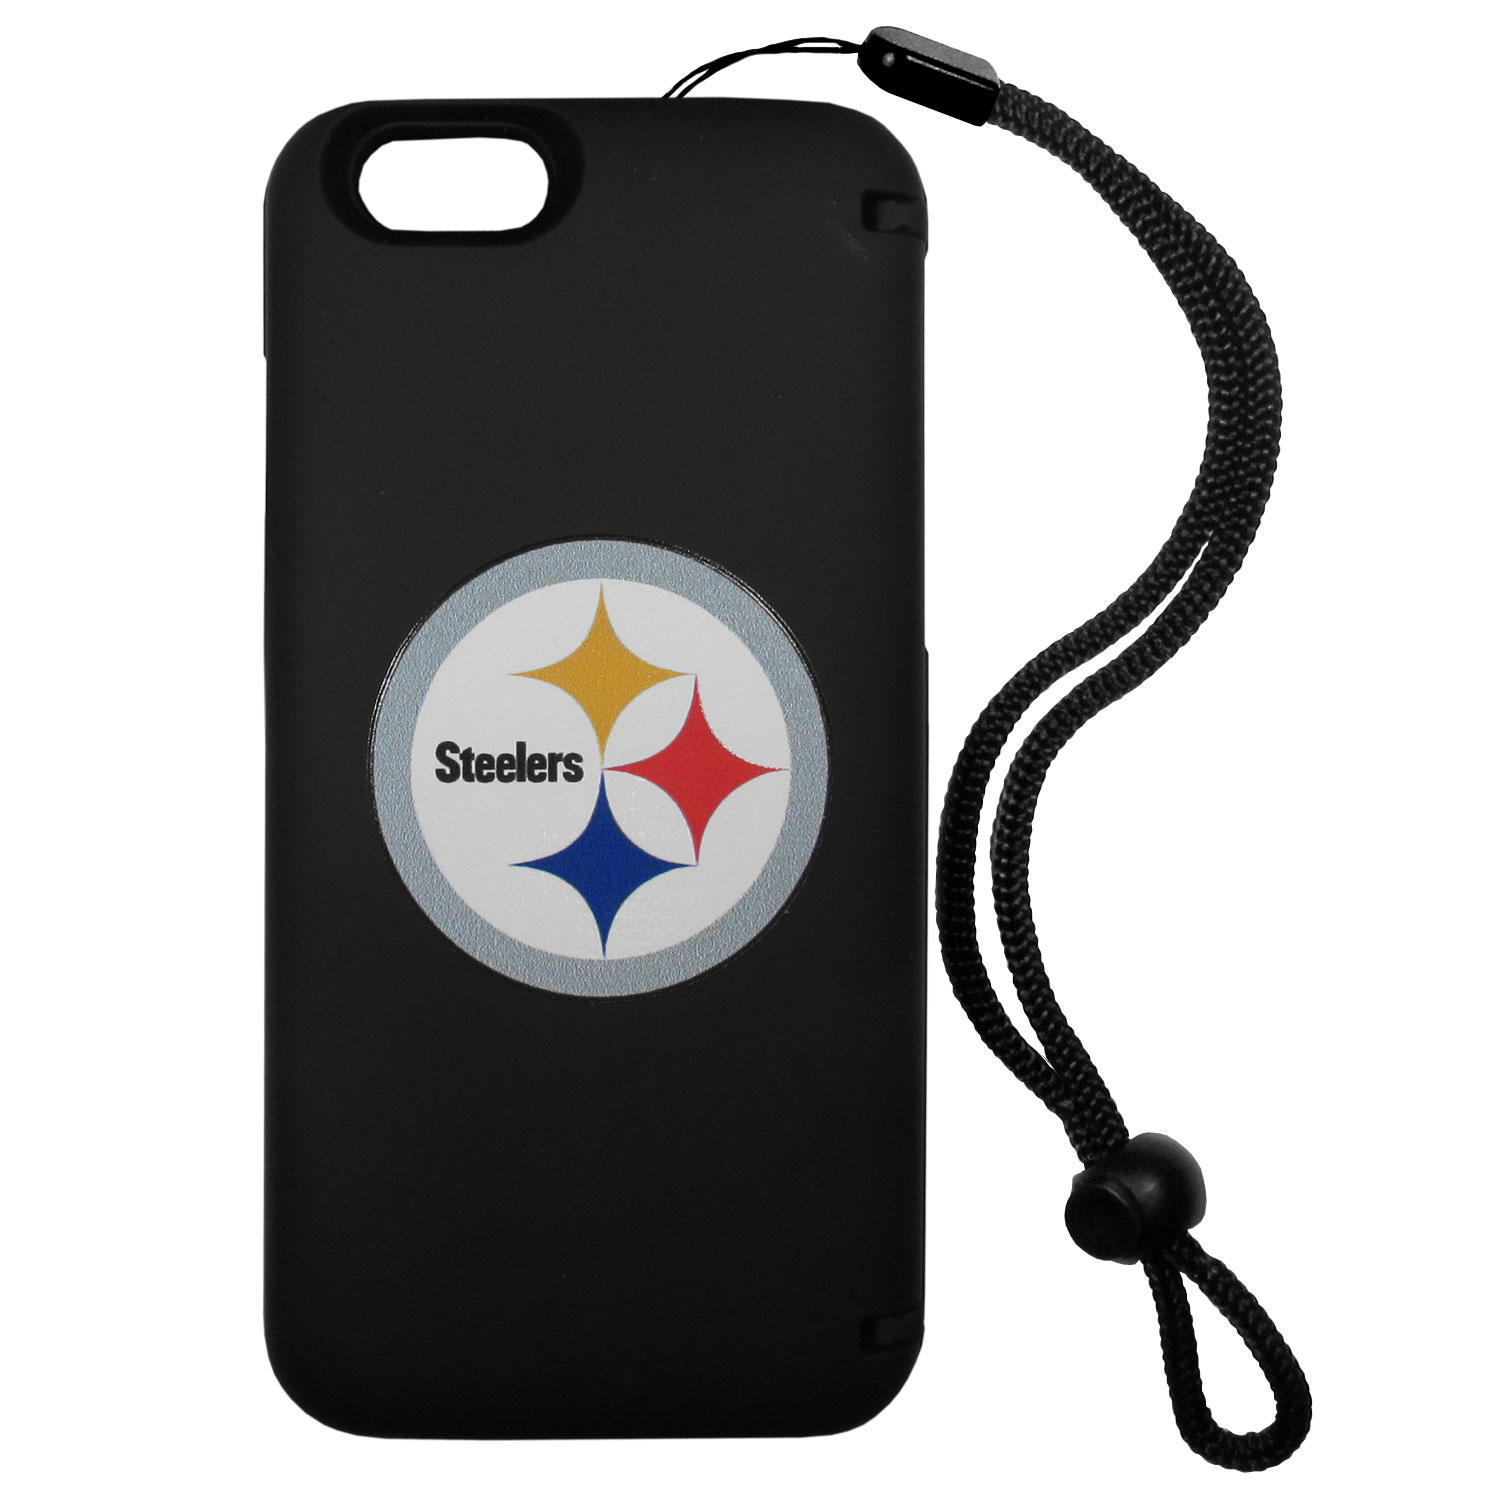 Pittsburgh Steelers iPhone 6 Plus Everything Case - This case really does have everything but the kitchen sink! The hidden compartment lets you keep your cards, money and tickets to the big game safe and secure and has a compact mirror so you can make sure your game face is ready to go. It also comes with a kickstand to make chatting and watching videos a breeze. The wrist strap allows you to travel with ease with your everything case. If that's not enough, it also comes with the Pittsburgh Steelers logo printed in expert detail on the front.